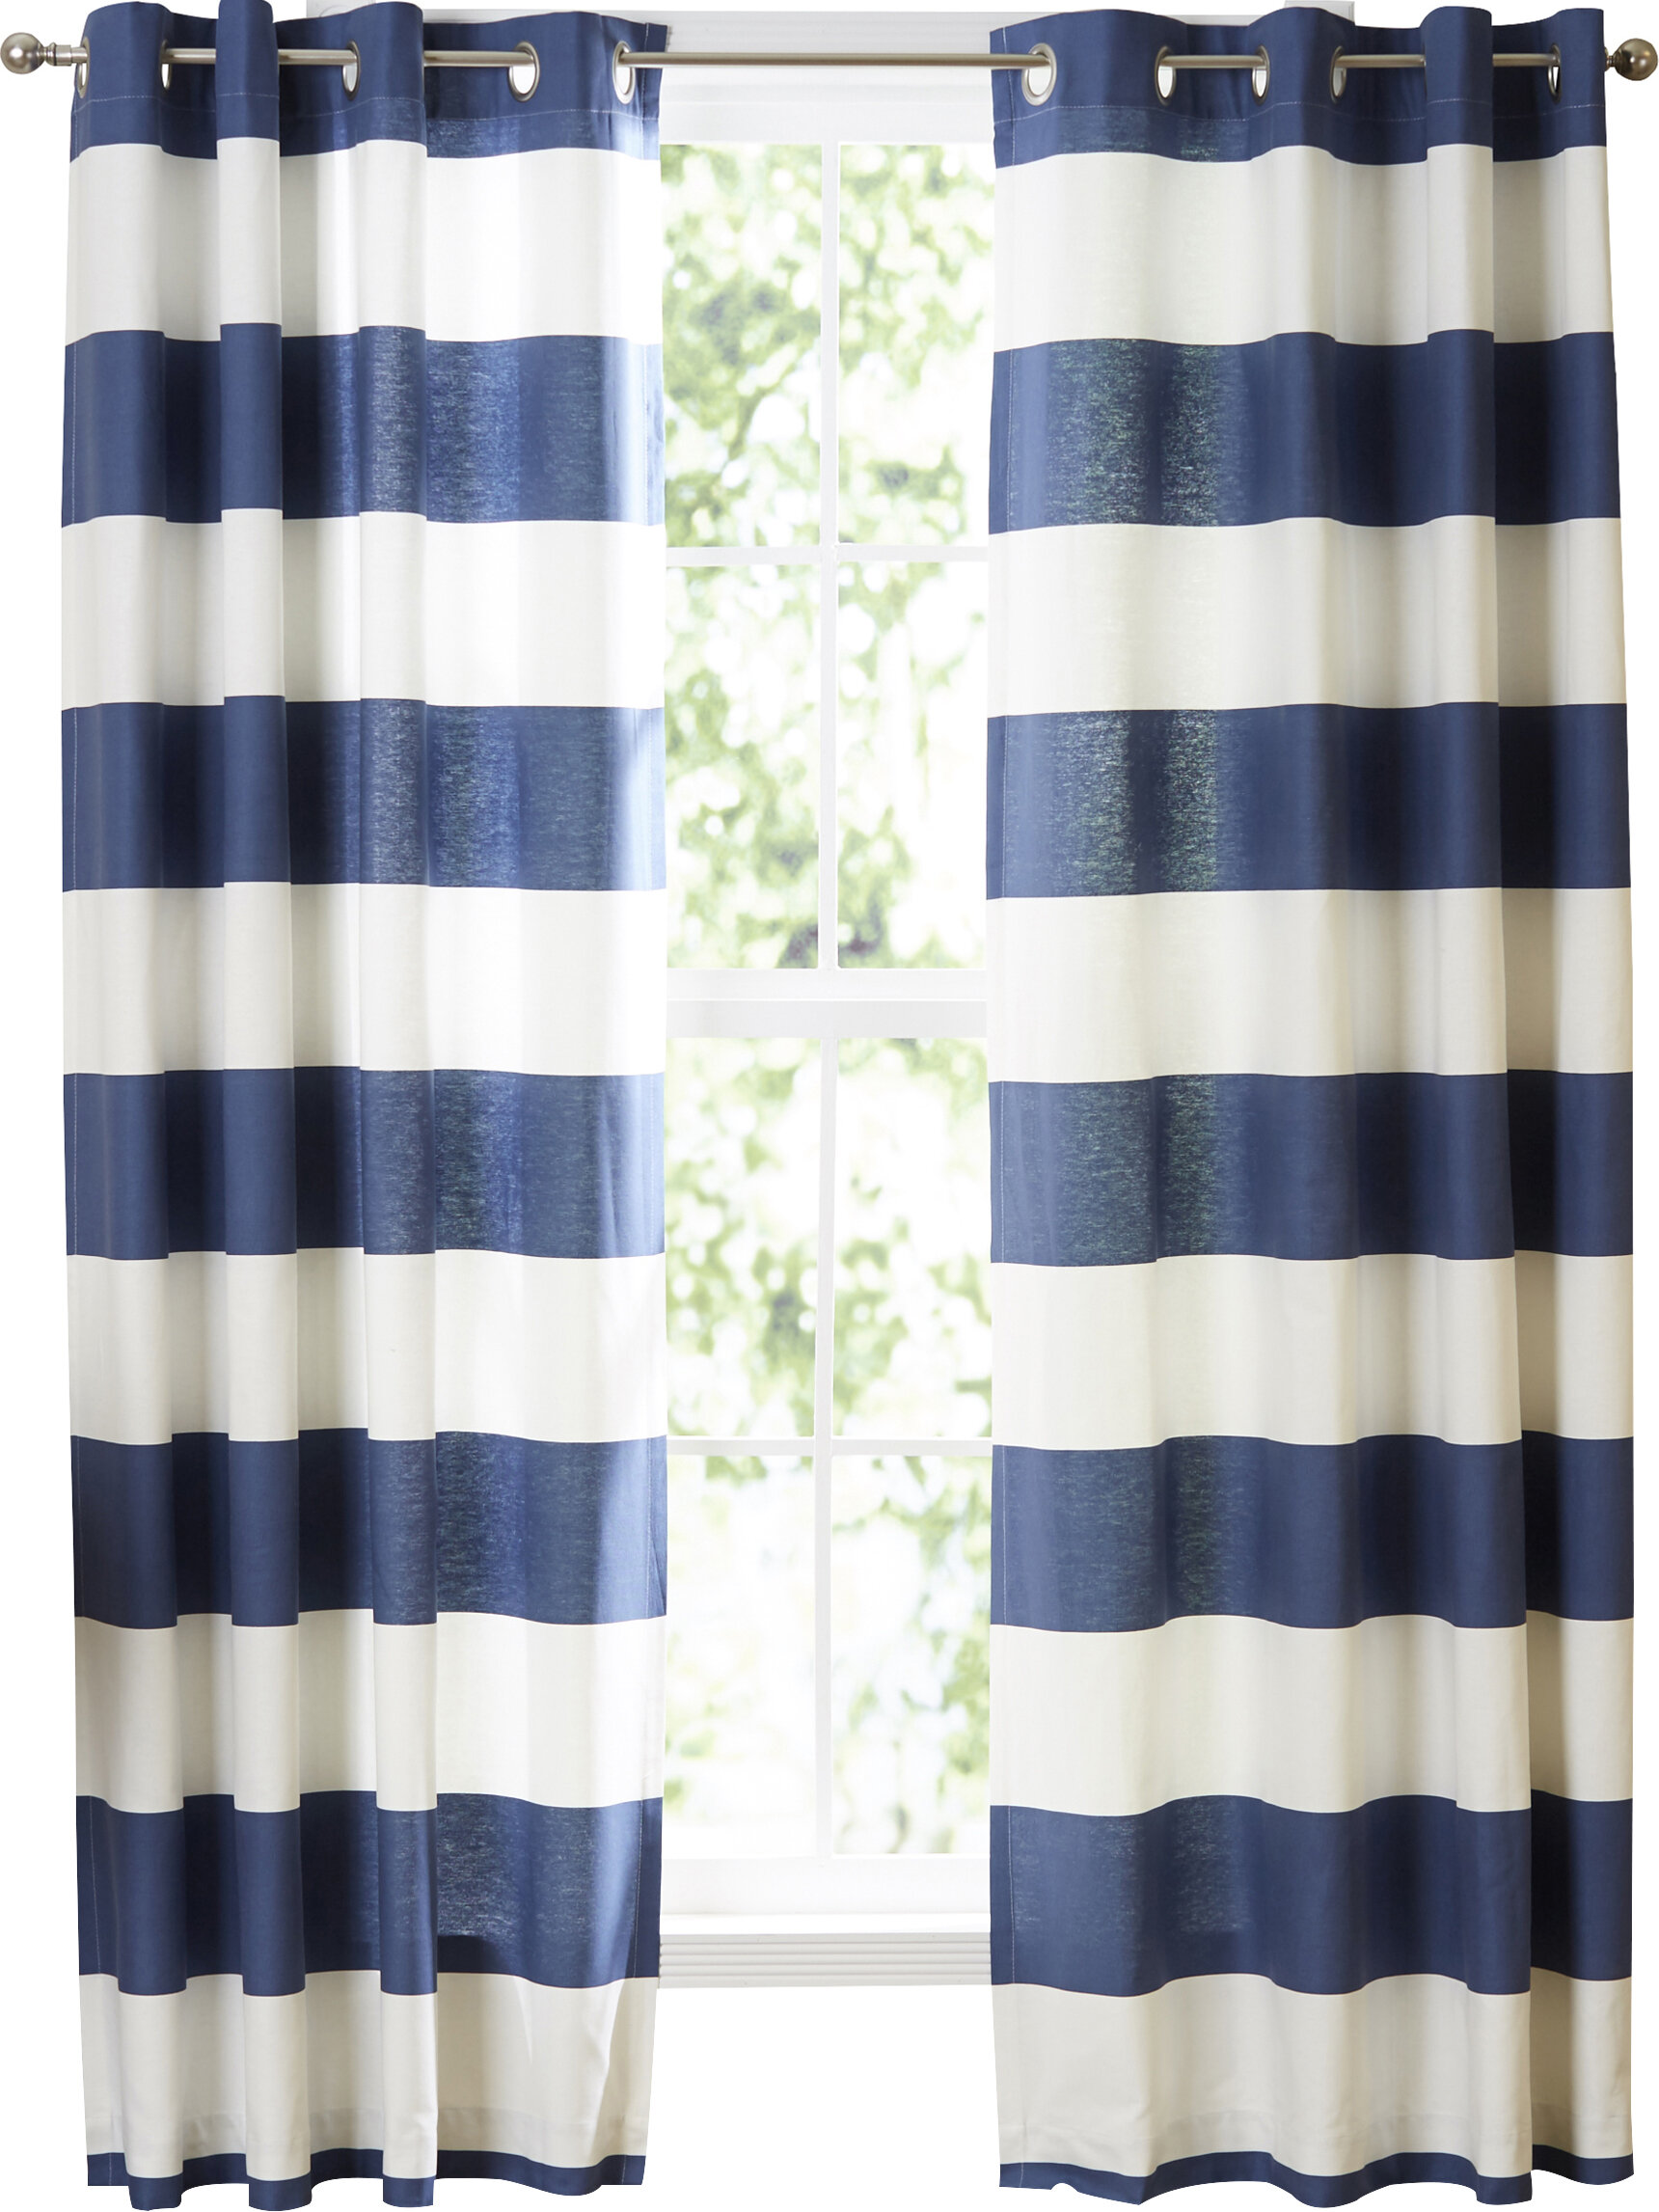 white w nautical nautica training plaid vertical multi park whales and curtain colorful amazon ideas curtains smith world blue walmart potty navy black jcpenney shower personalized fabric retro target cambridge striped market anchor colored